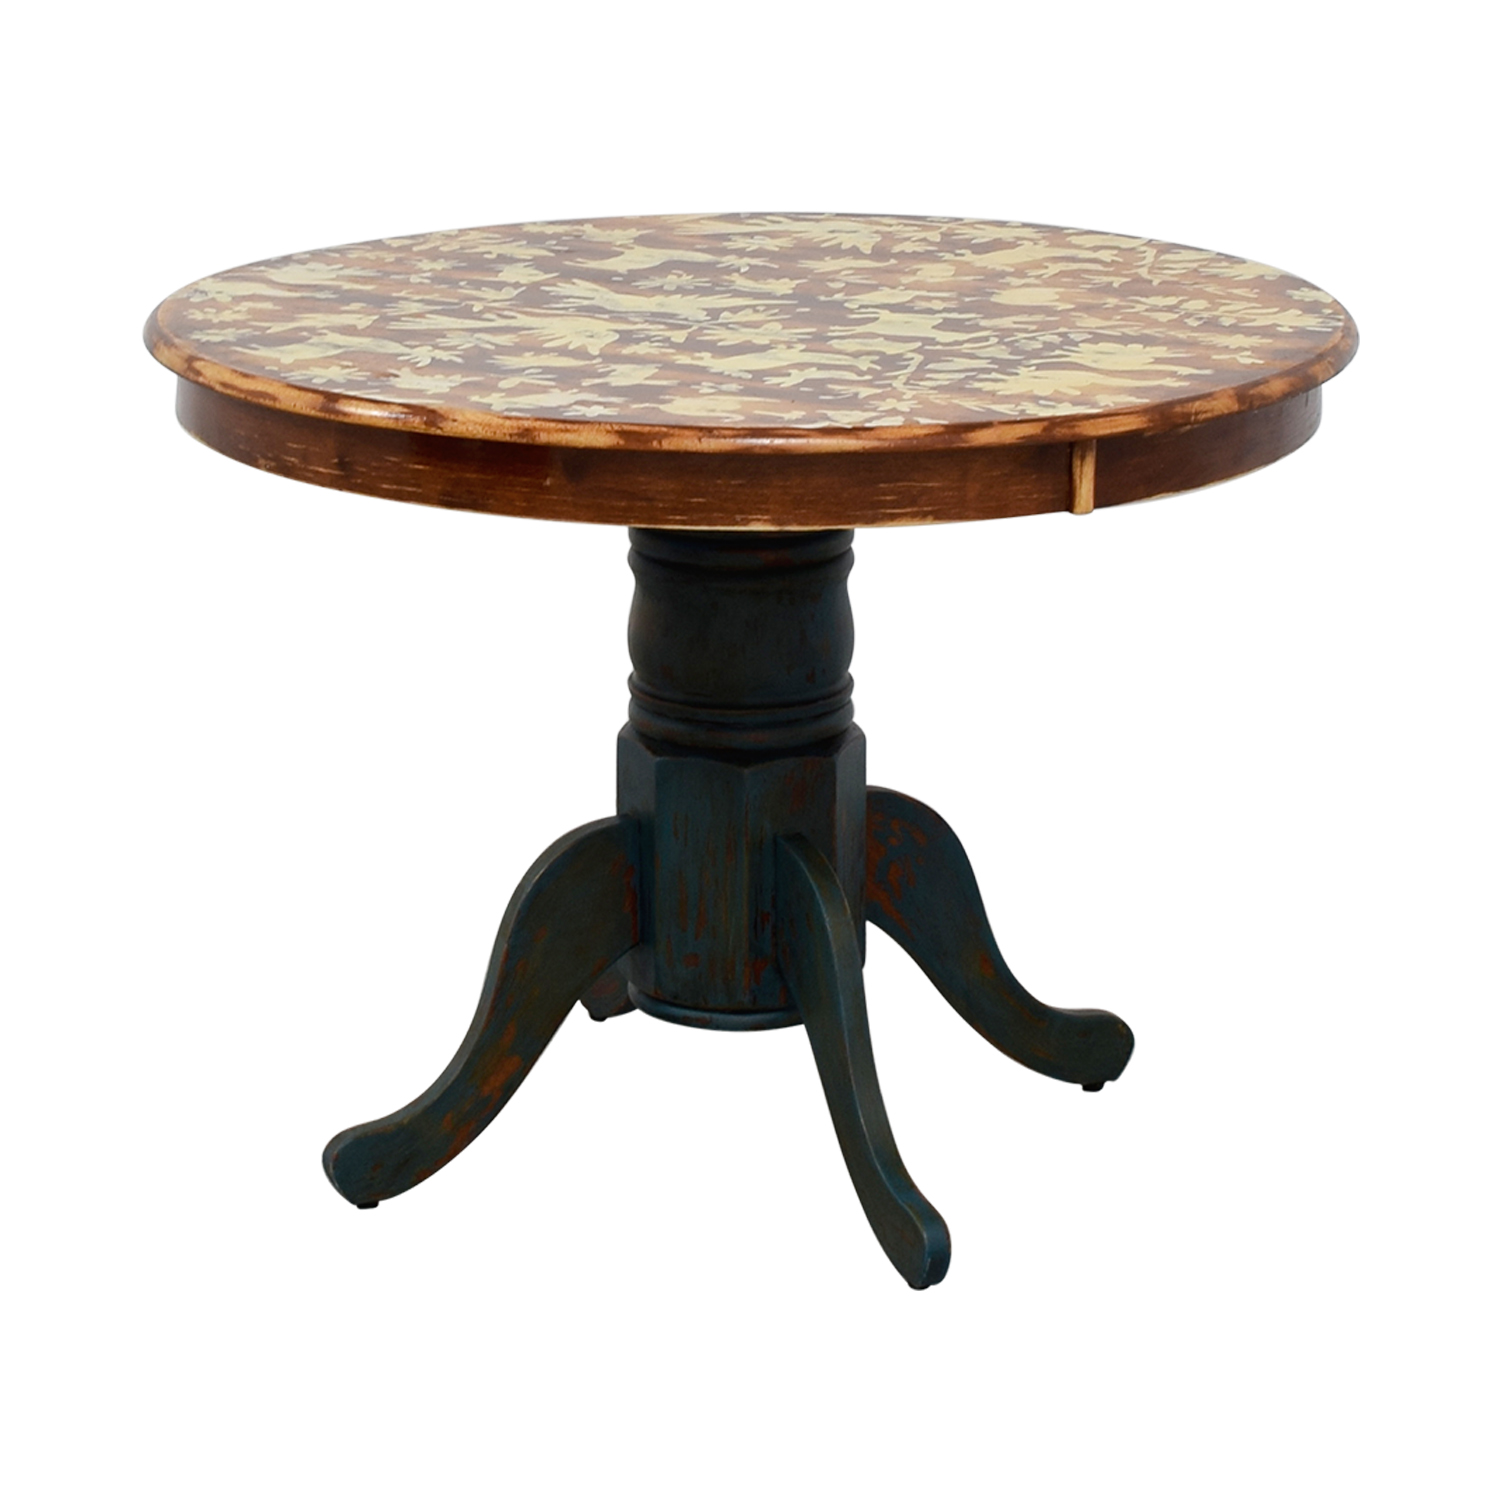 Vintage Hand-Stenciled Farmhouse Style Round Kitchen Table second hand